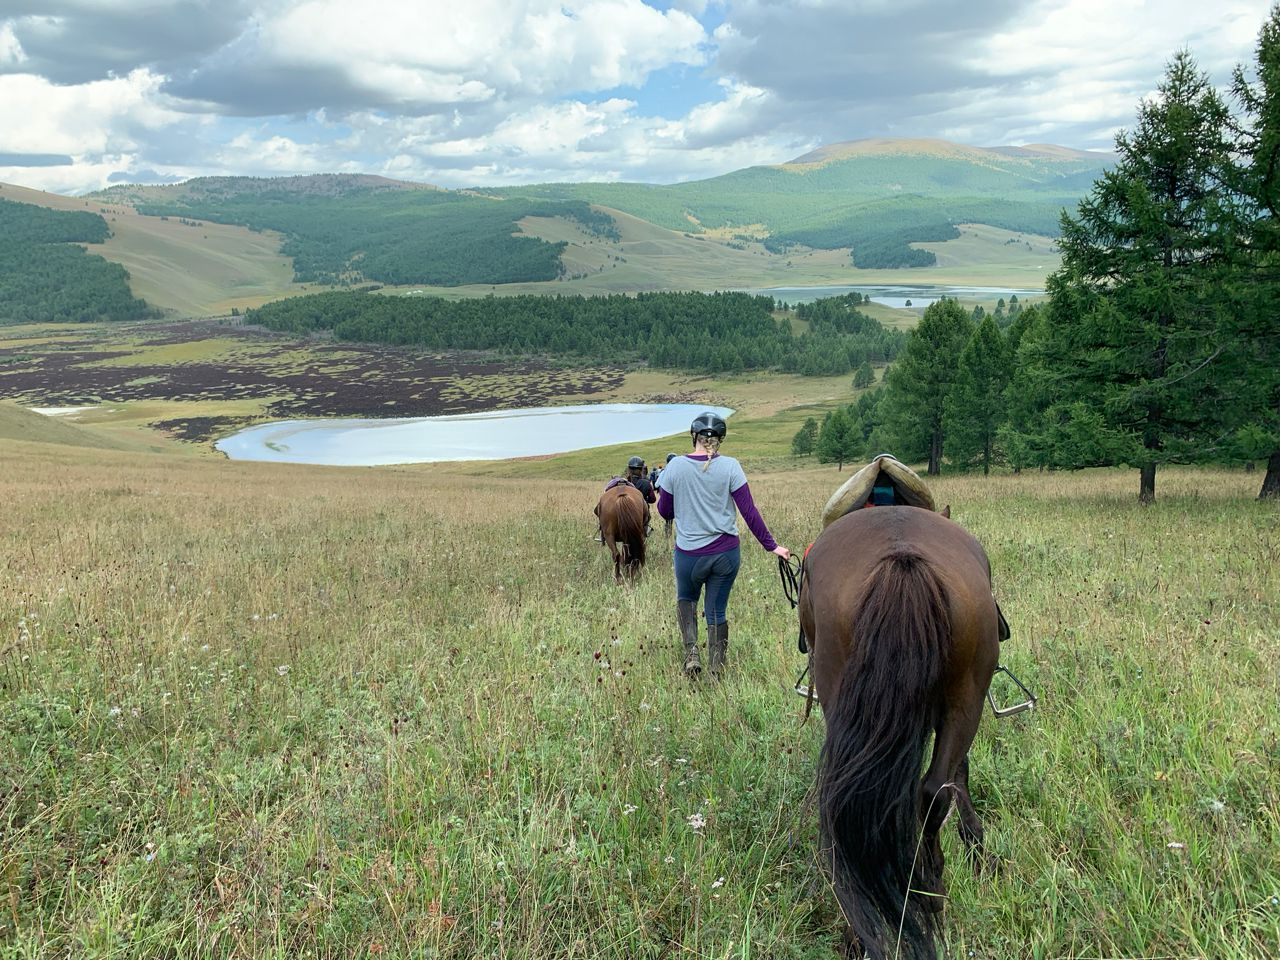 Orkhon Valley Camping Ride itinerary.